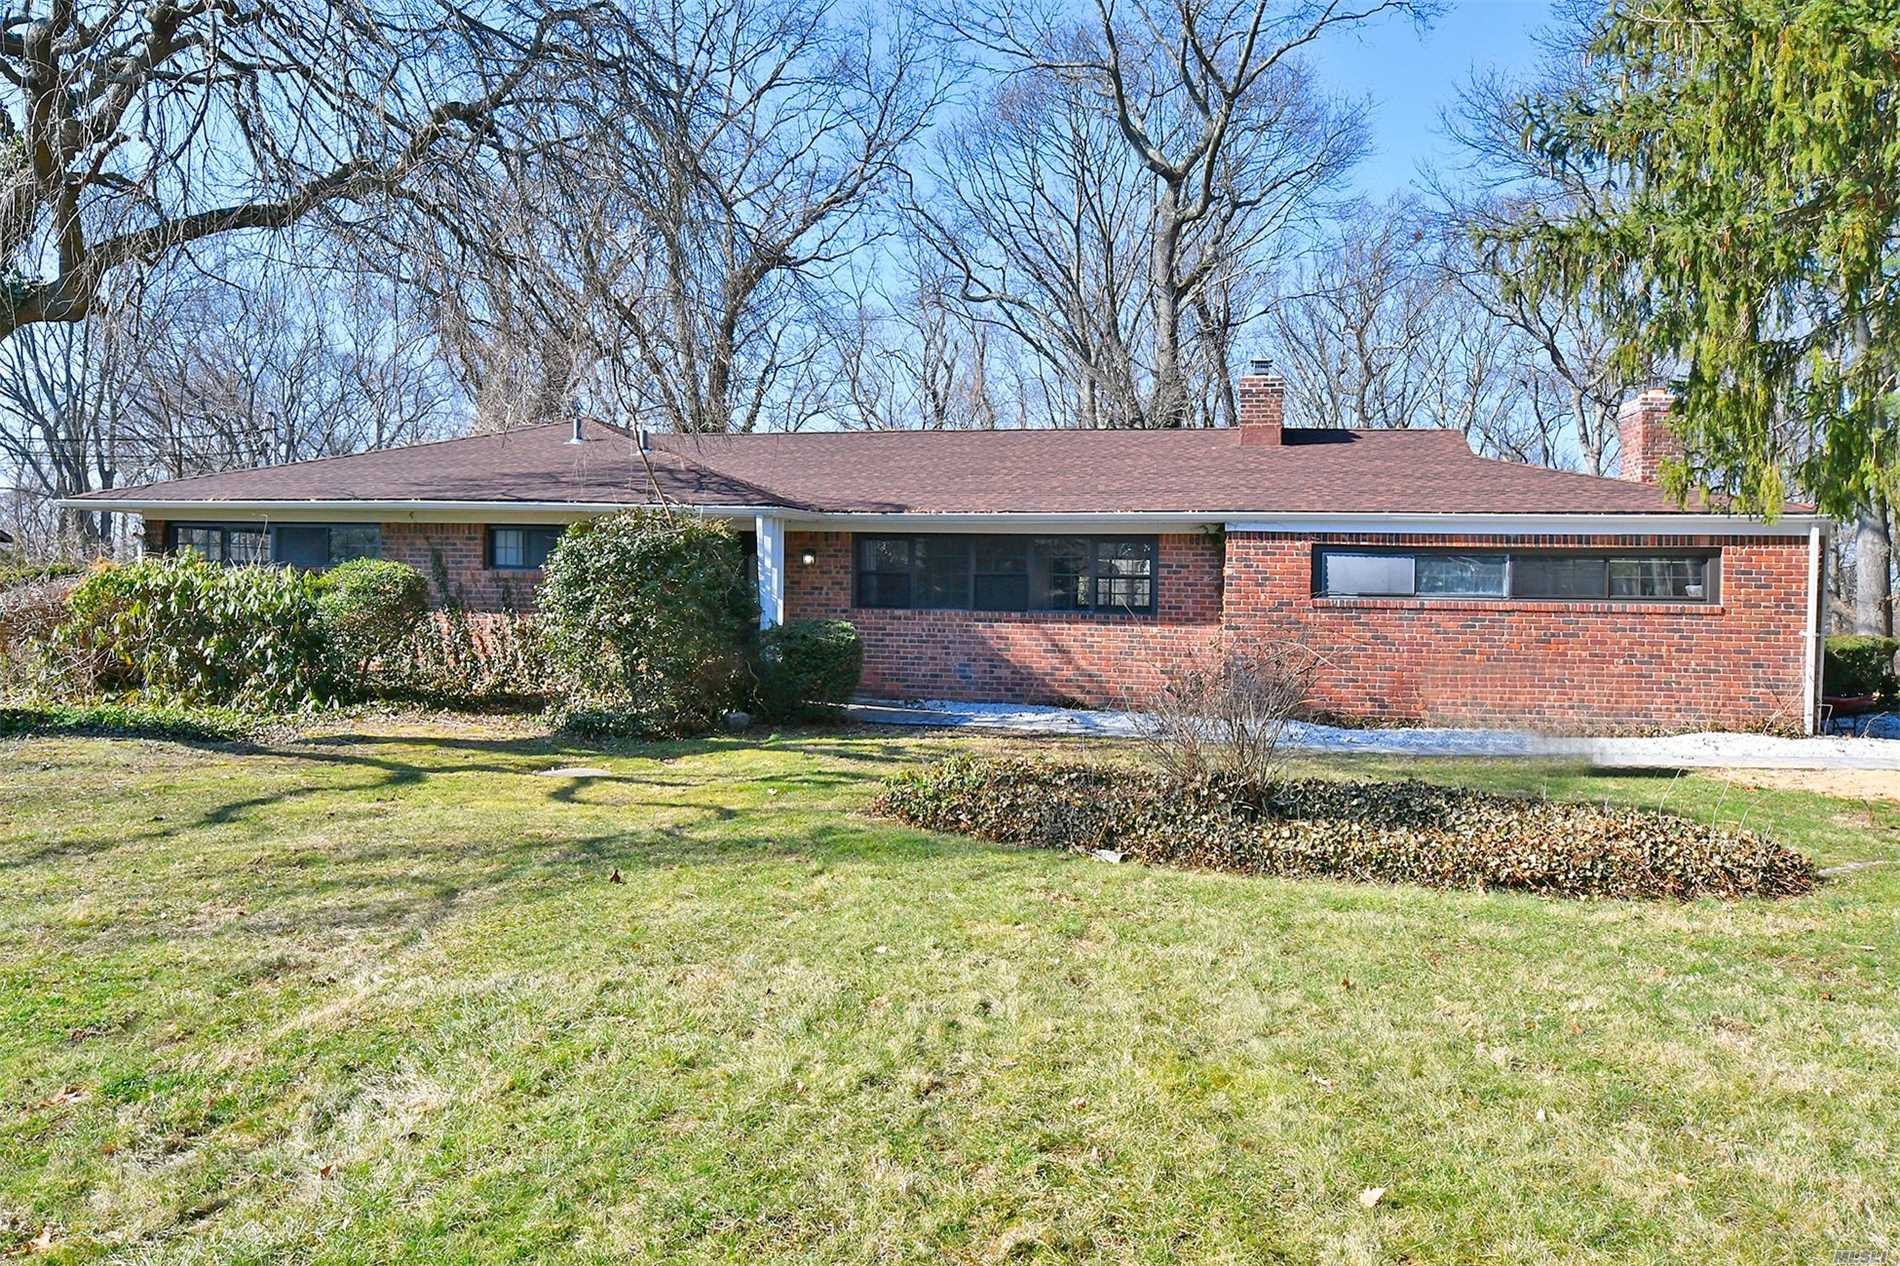 Photo of home for sale at 24 Pine Dr, Woodbury NY